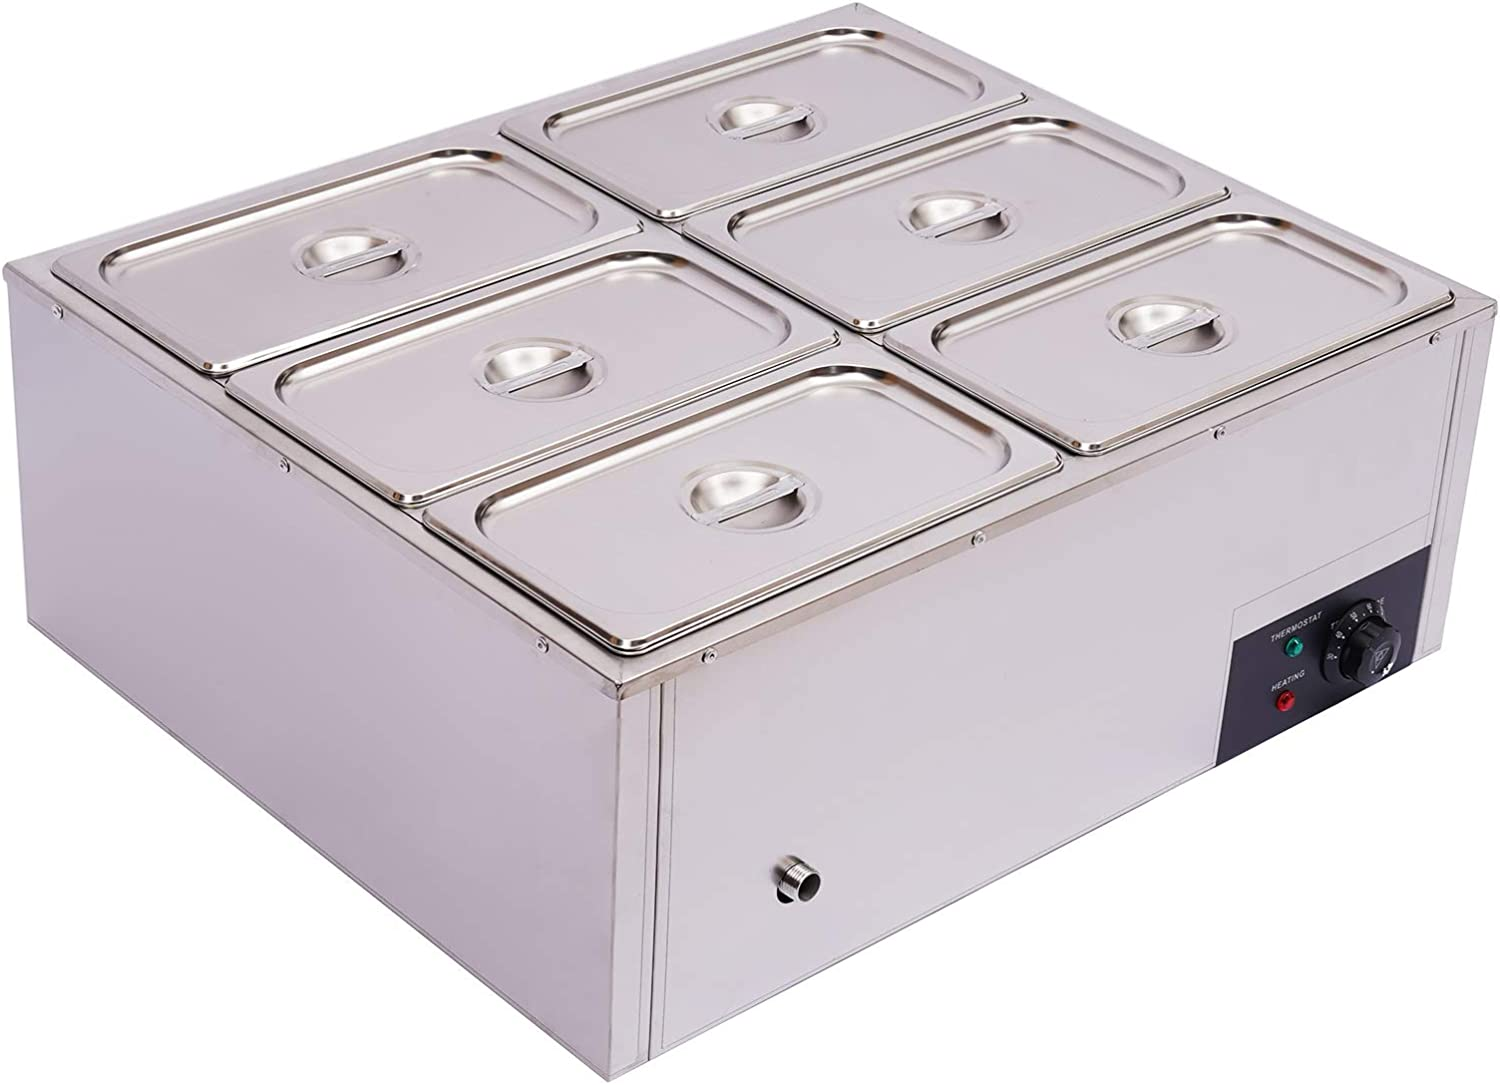 Commercial Food Warmer Limited price sale Steamer 6-Pan Max 83% OFF Stainless El Steel 1.84Gal